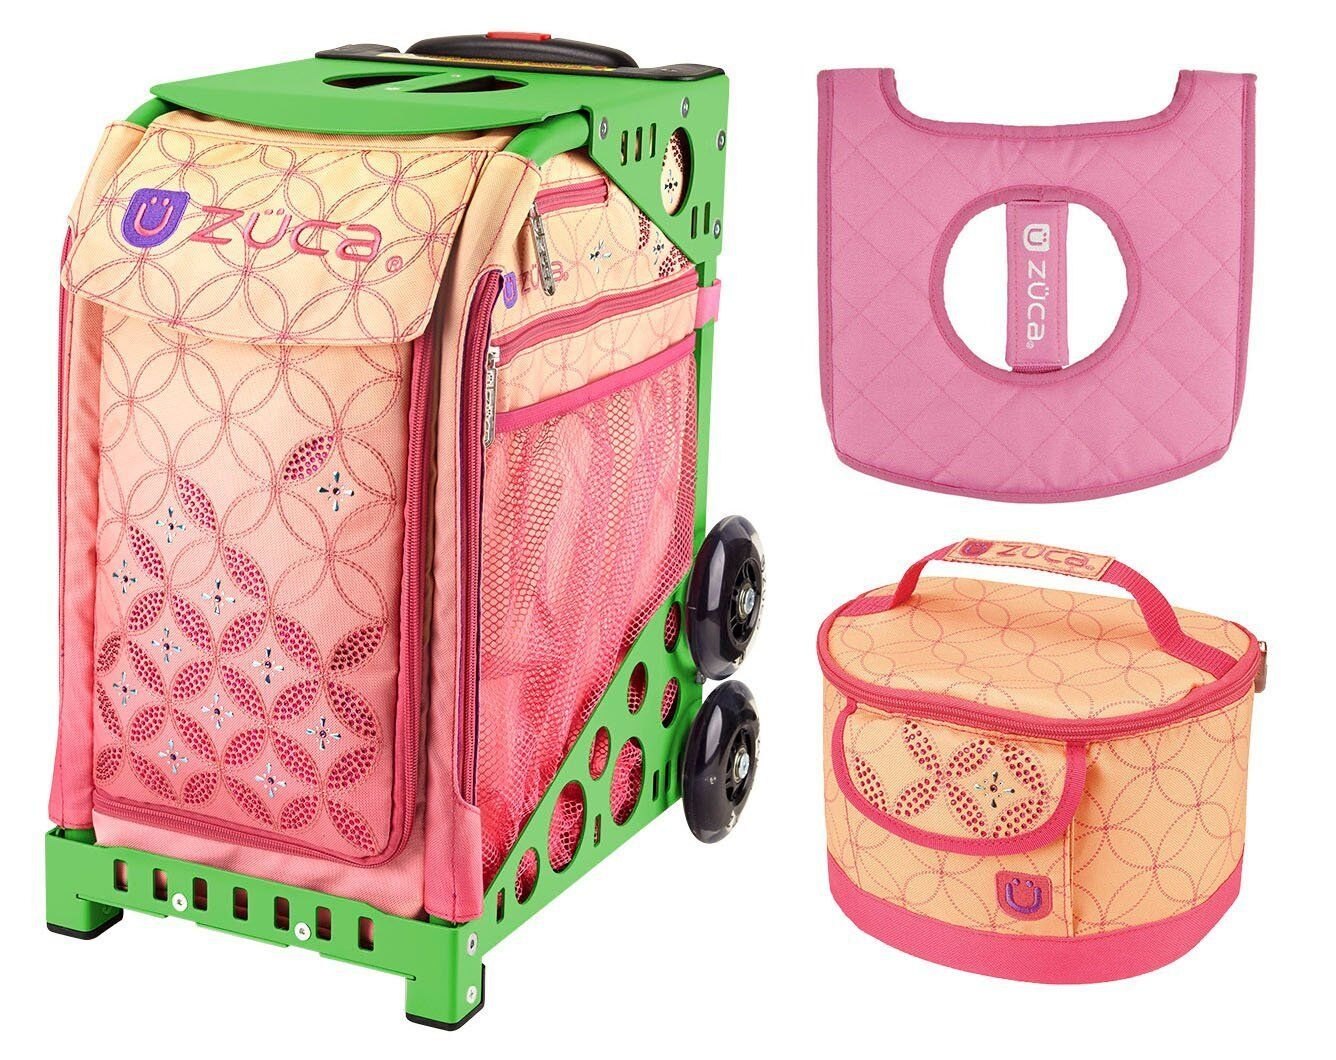 Zuca Sport Bag - SUNSET with GIFT Lunchbox and Seat Cover (Green Frame)